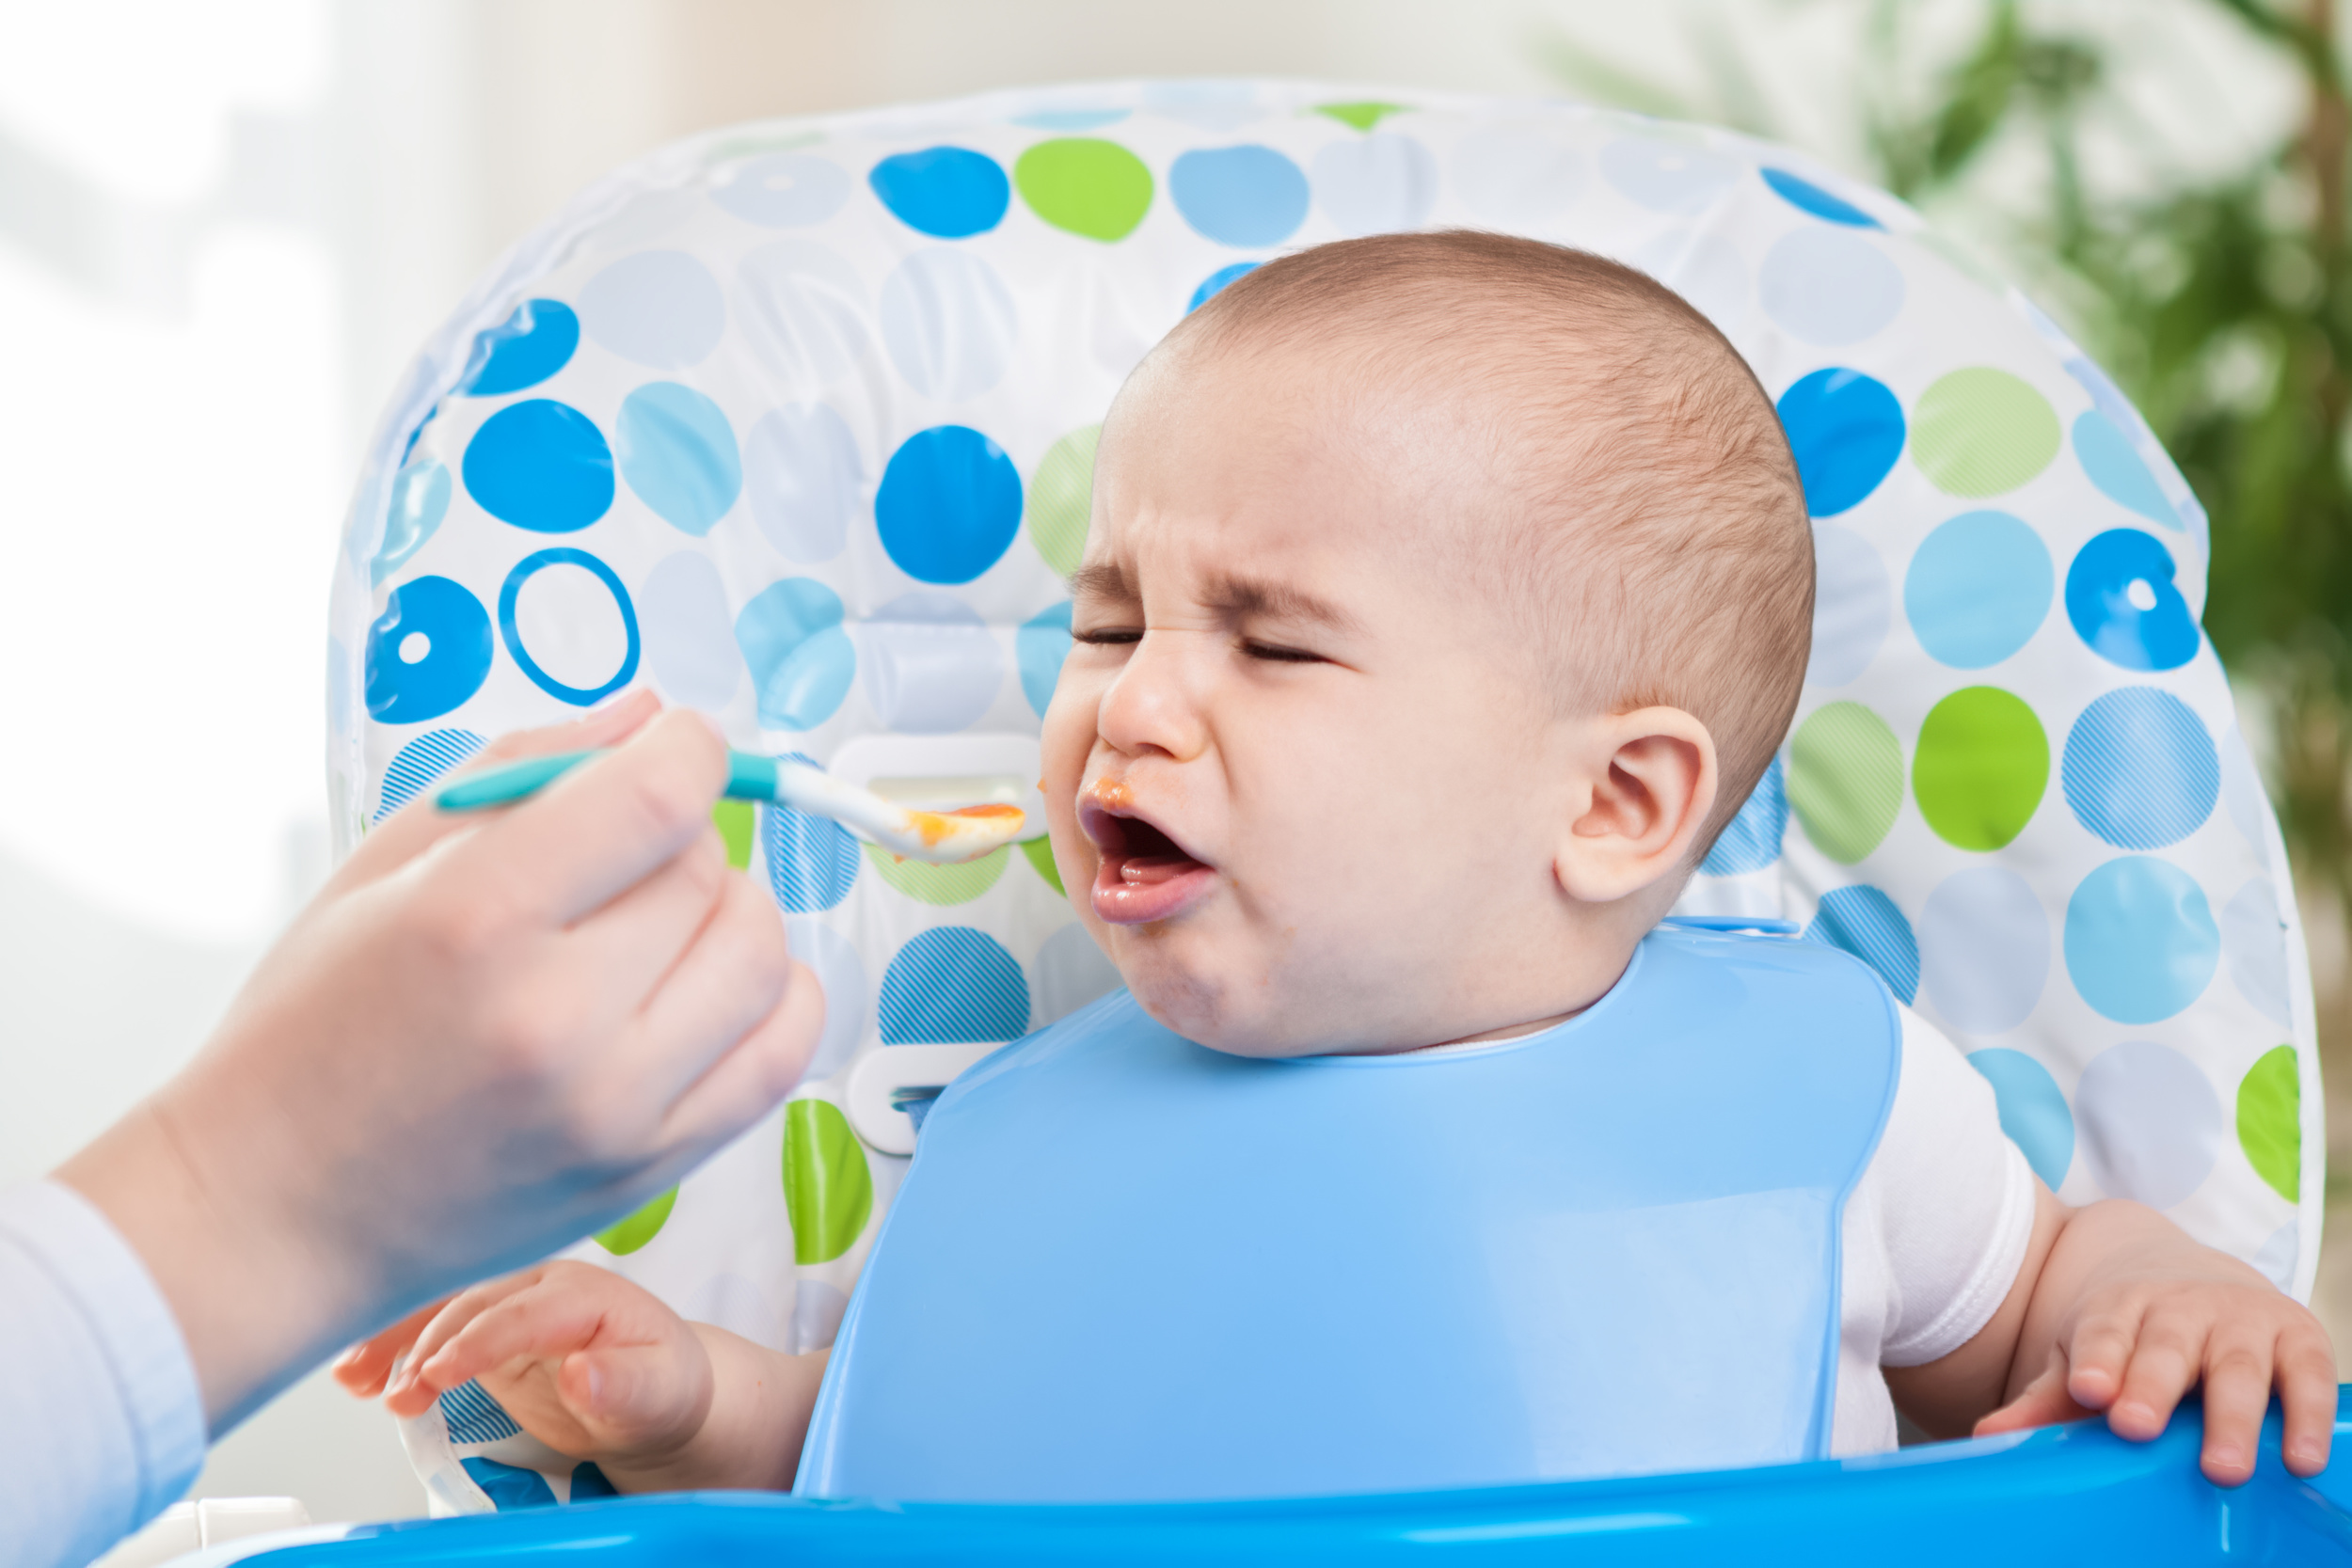 Angry baby doesn't like fruit mash